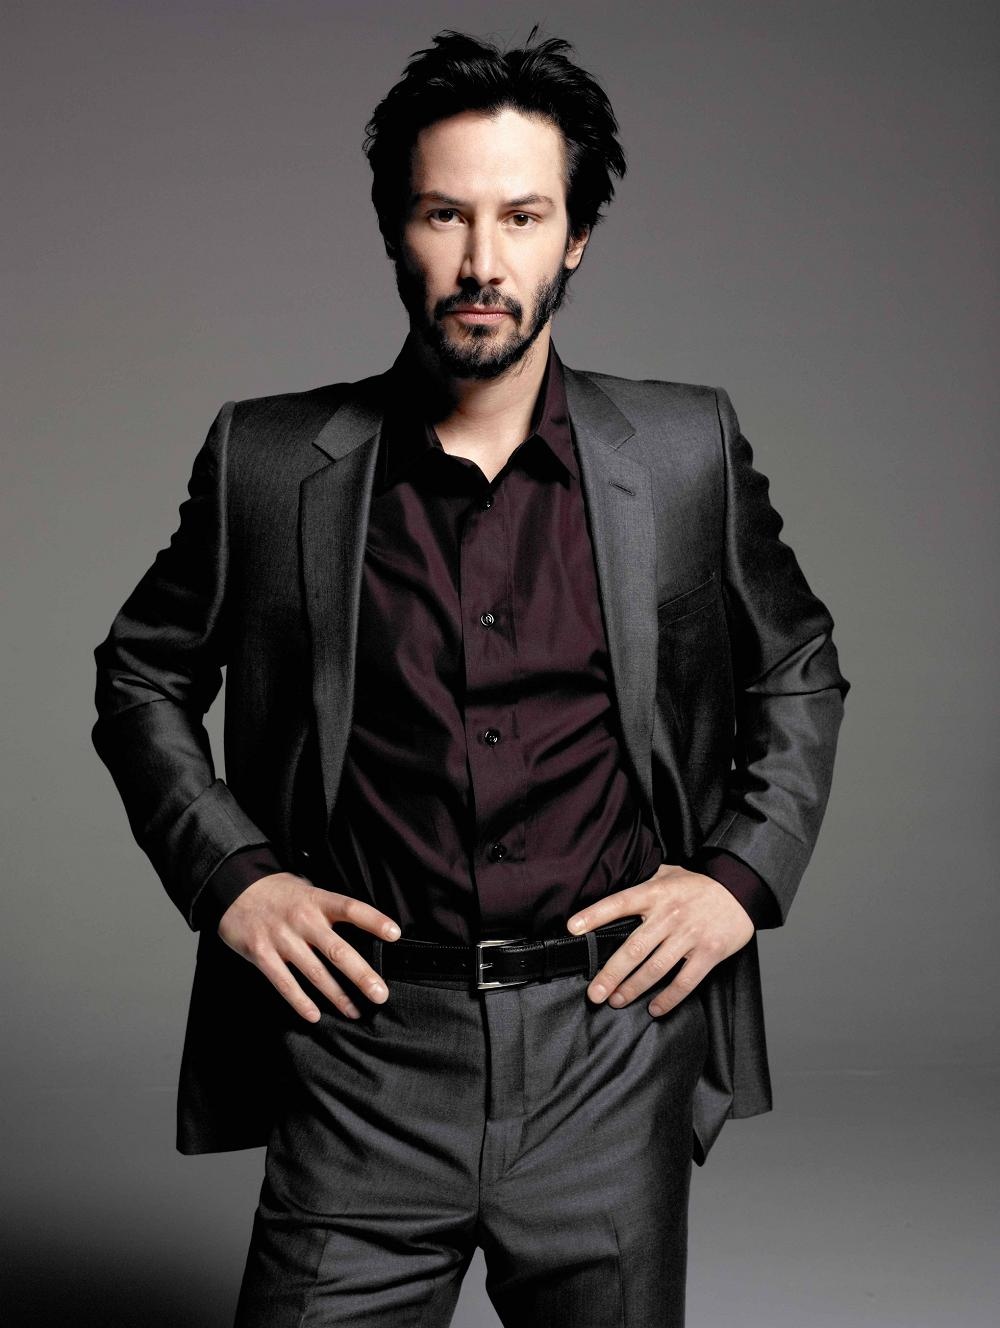 keanu reeves historia hollywood